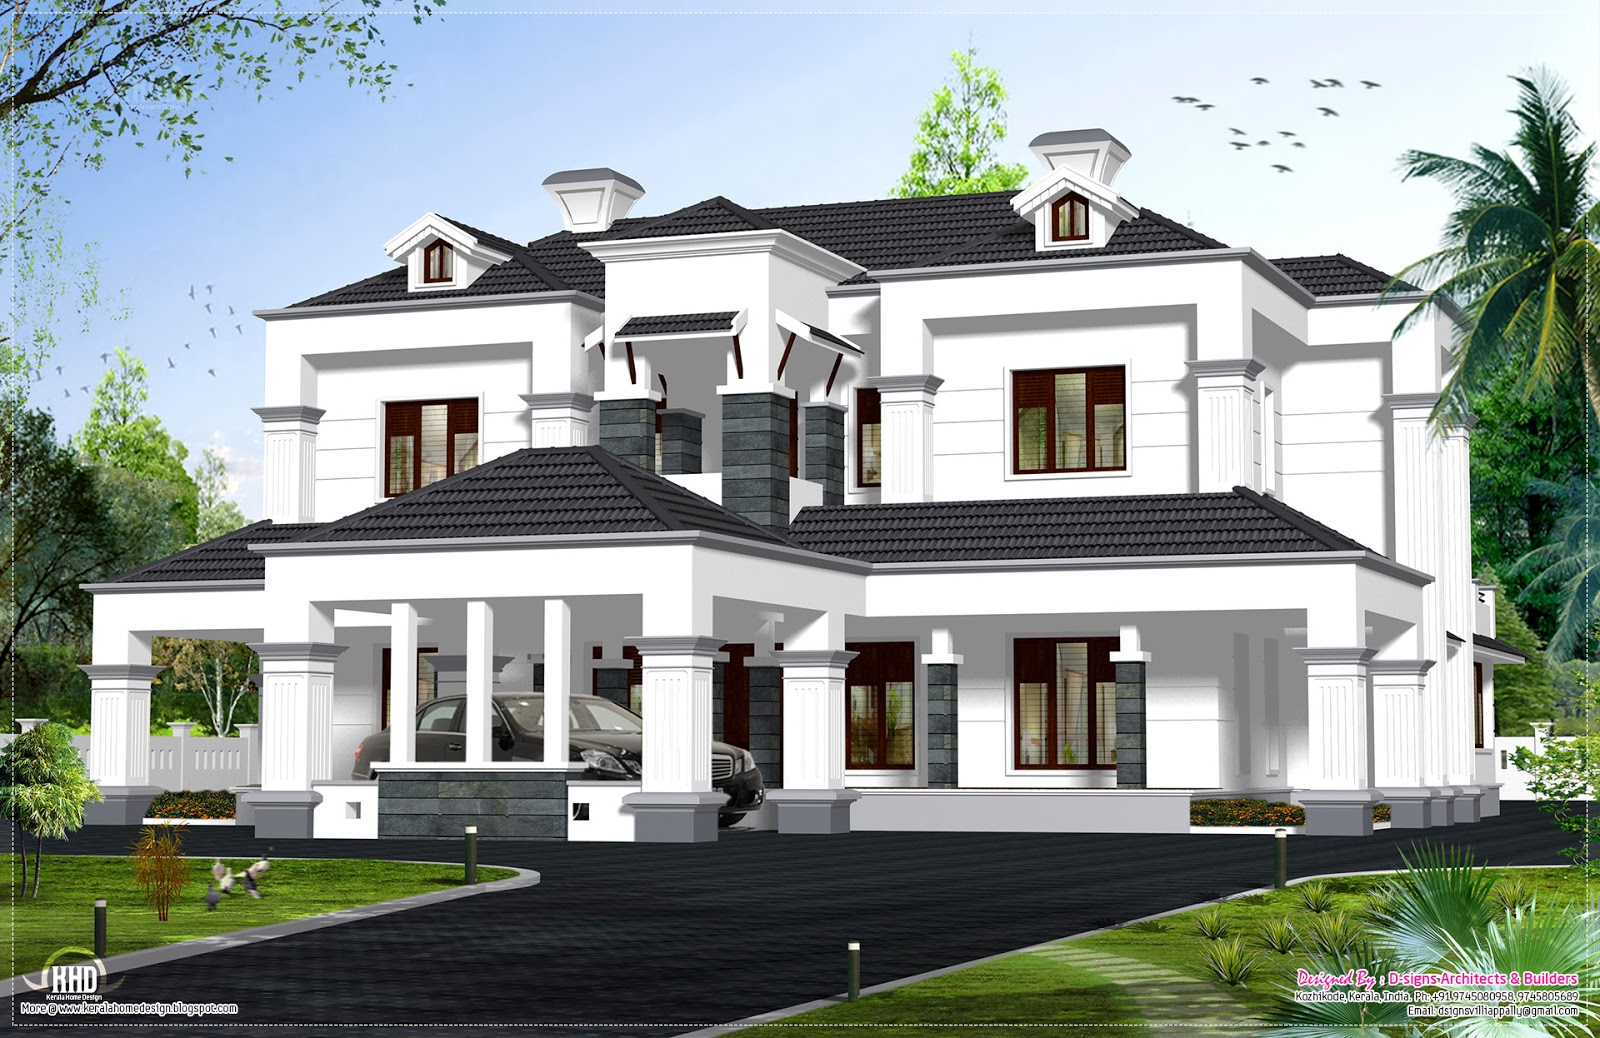 Victorian model house exterior kerala home design and for Model house plan